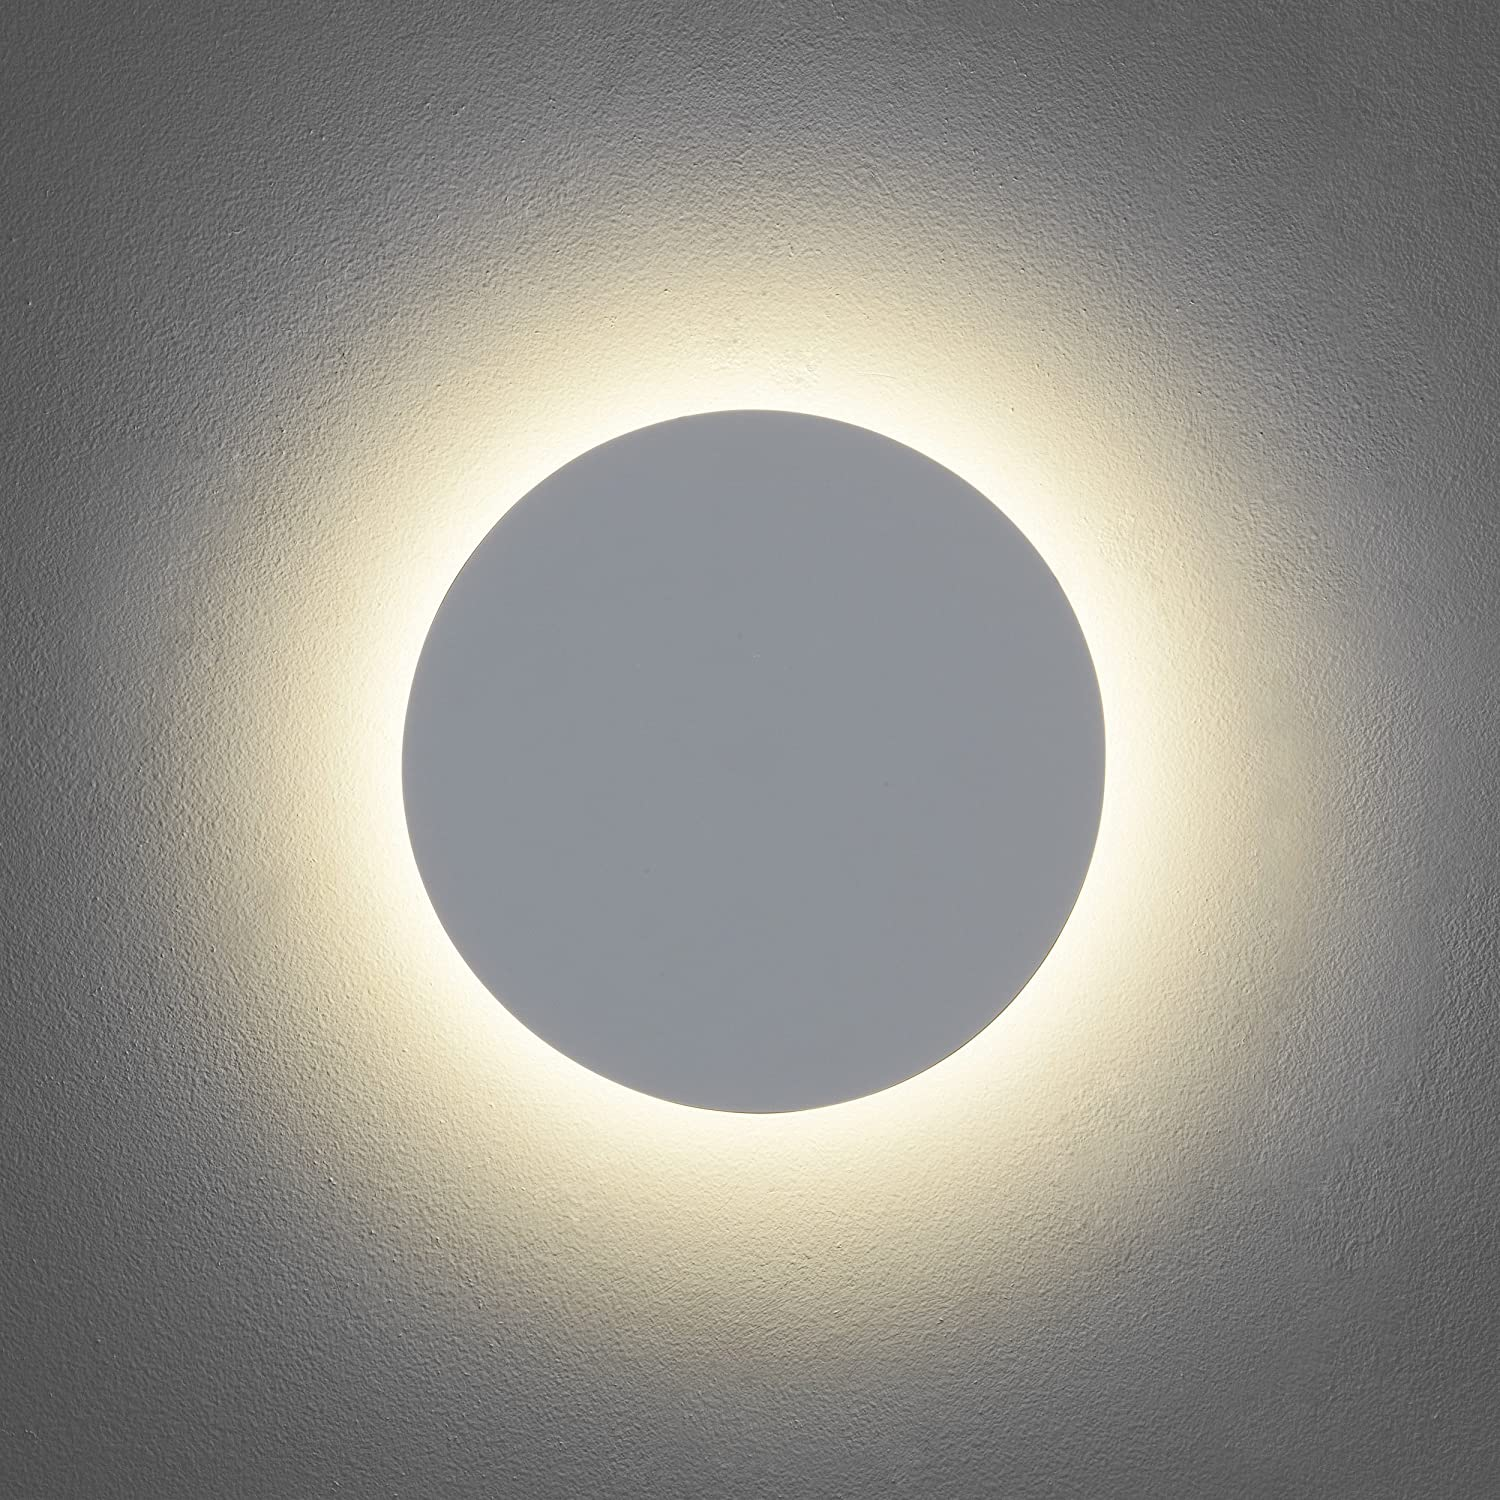 Astro eclipse 250 round led plaster wall light 8w led very warm astro eclipse 250 round led plaster wall light 8w led very warm white 2700k amazon lighting parisarafo Choice Image